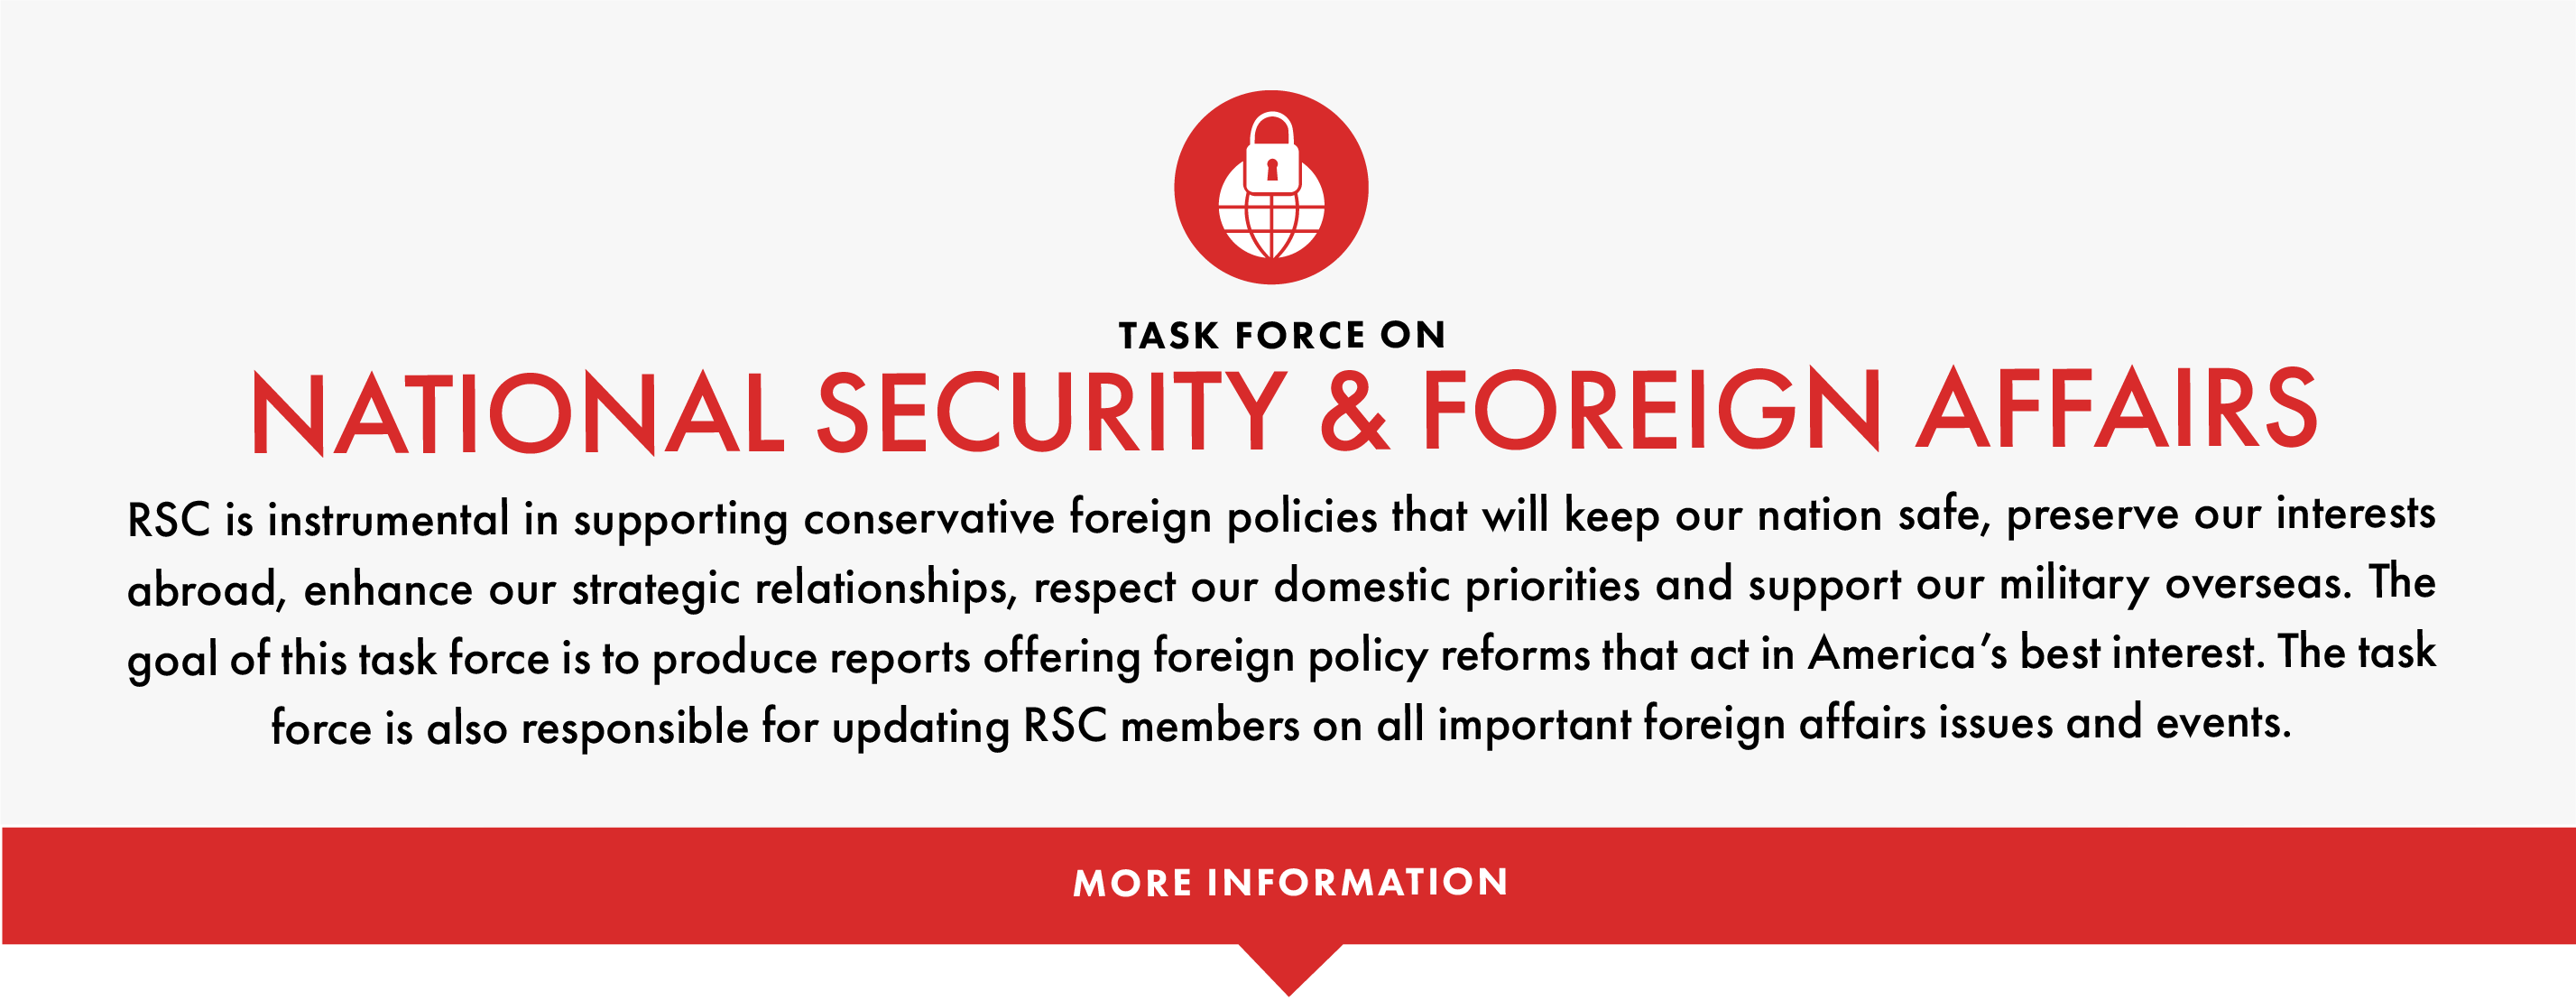 The goal of this task force is to produce reports offering foreing policy reforms that act in America's best interest